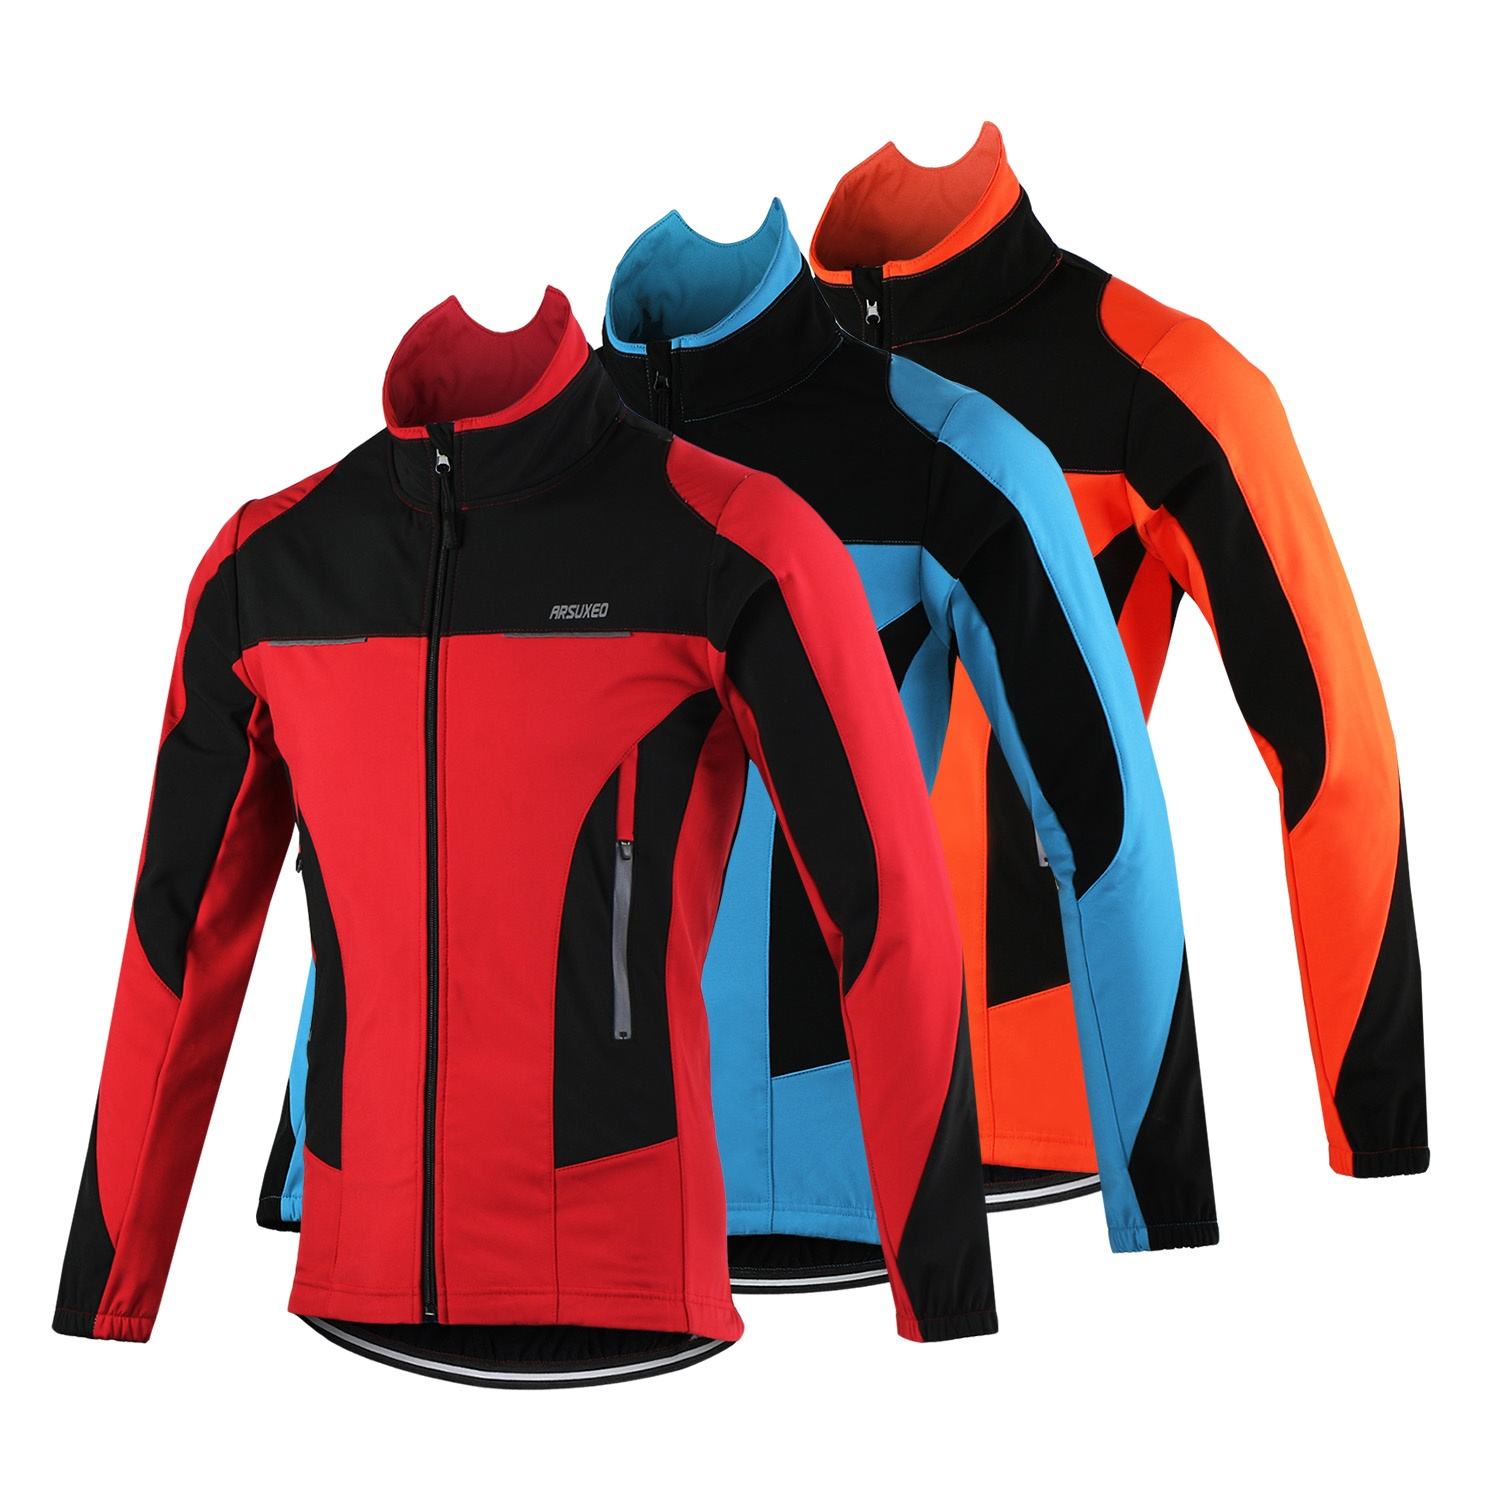 fce587080 Details about Thermal Cycling Jacket Winter Bicycle Windproof Waterproof Sports  Coat Jersey